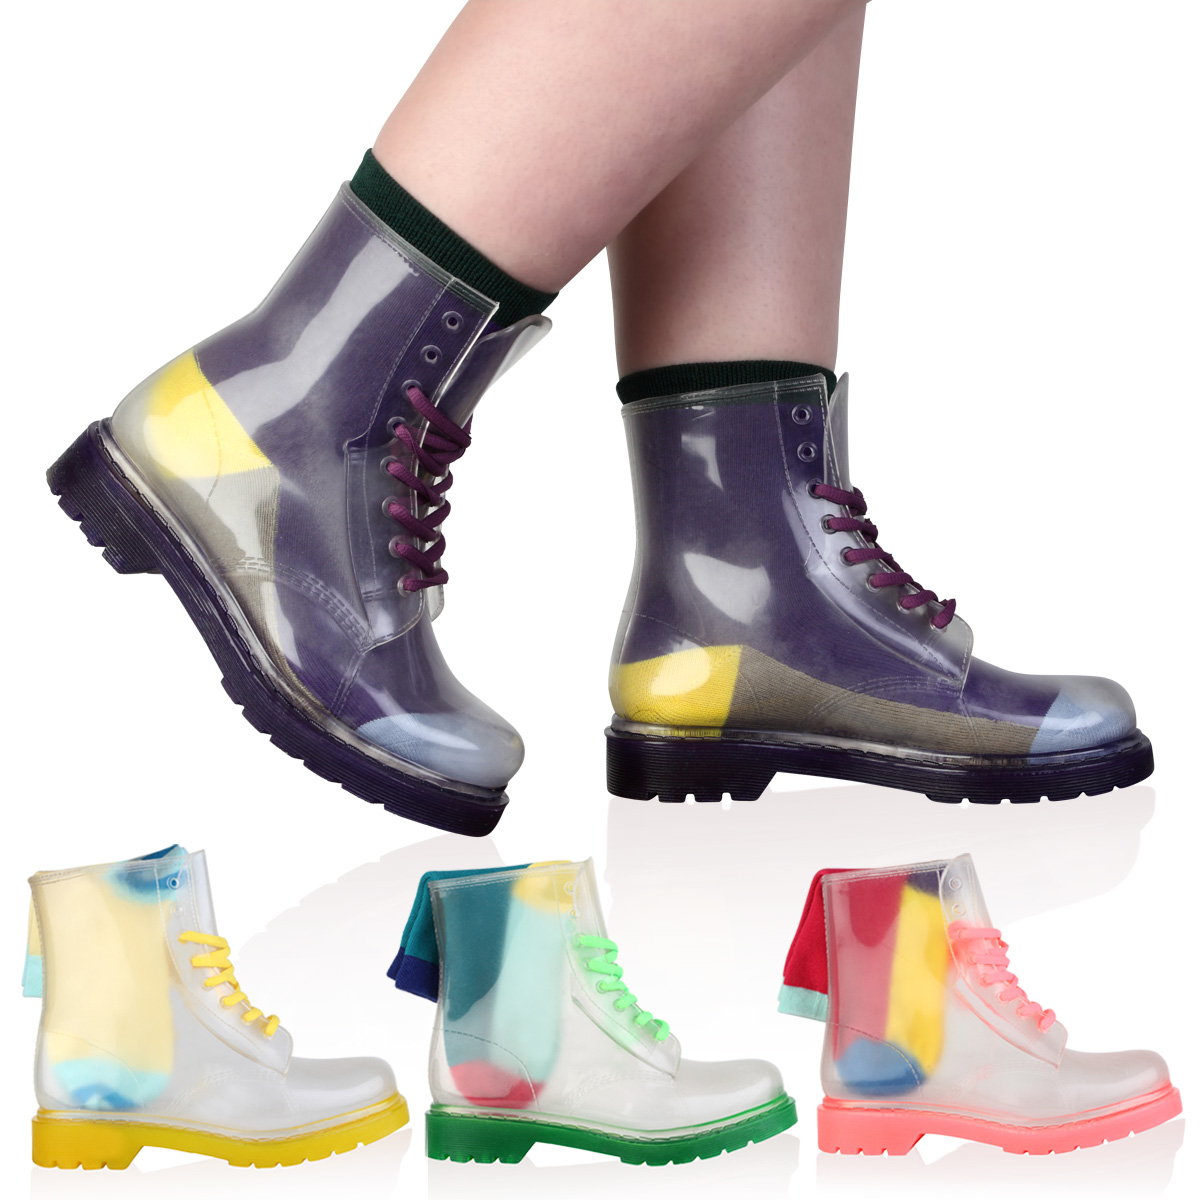 Unique Pair These Clear Rain Boots With Some Fun Colorful Socks For An Exciting, Cool Look The Neon Coral Sole And Shoelaces Create A Bright, Bold Statement, While Still Tackling The Elements Shoe Lace Color May Vary Pair These Clear Rain